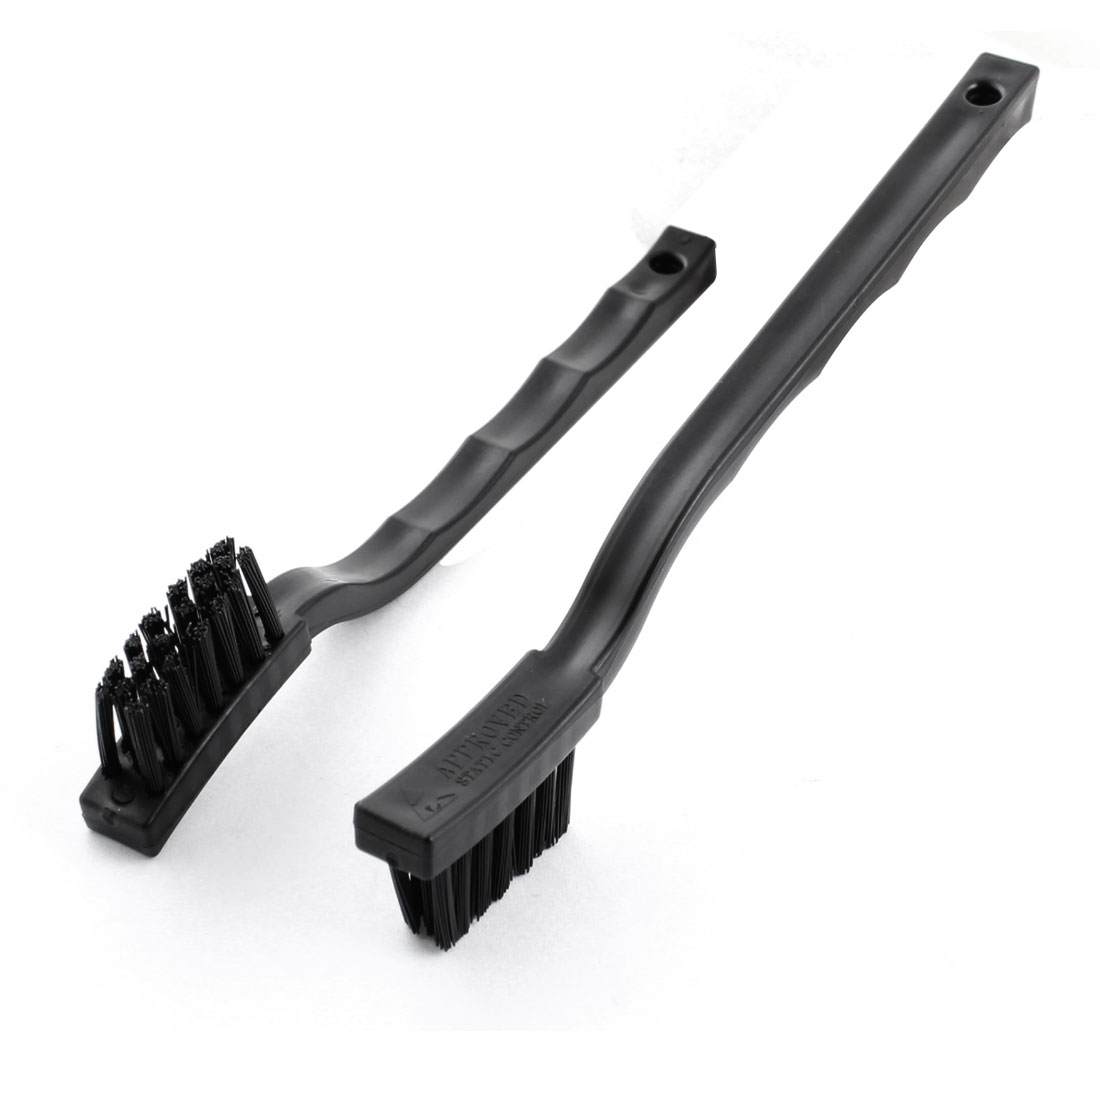 2 Pcs 17cm M Size Black Plastic Nonslip Handle Conductive Ground ESD Anti Static Cleaning Brush